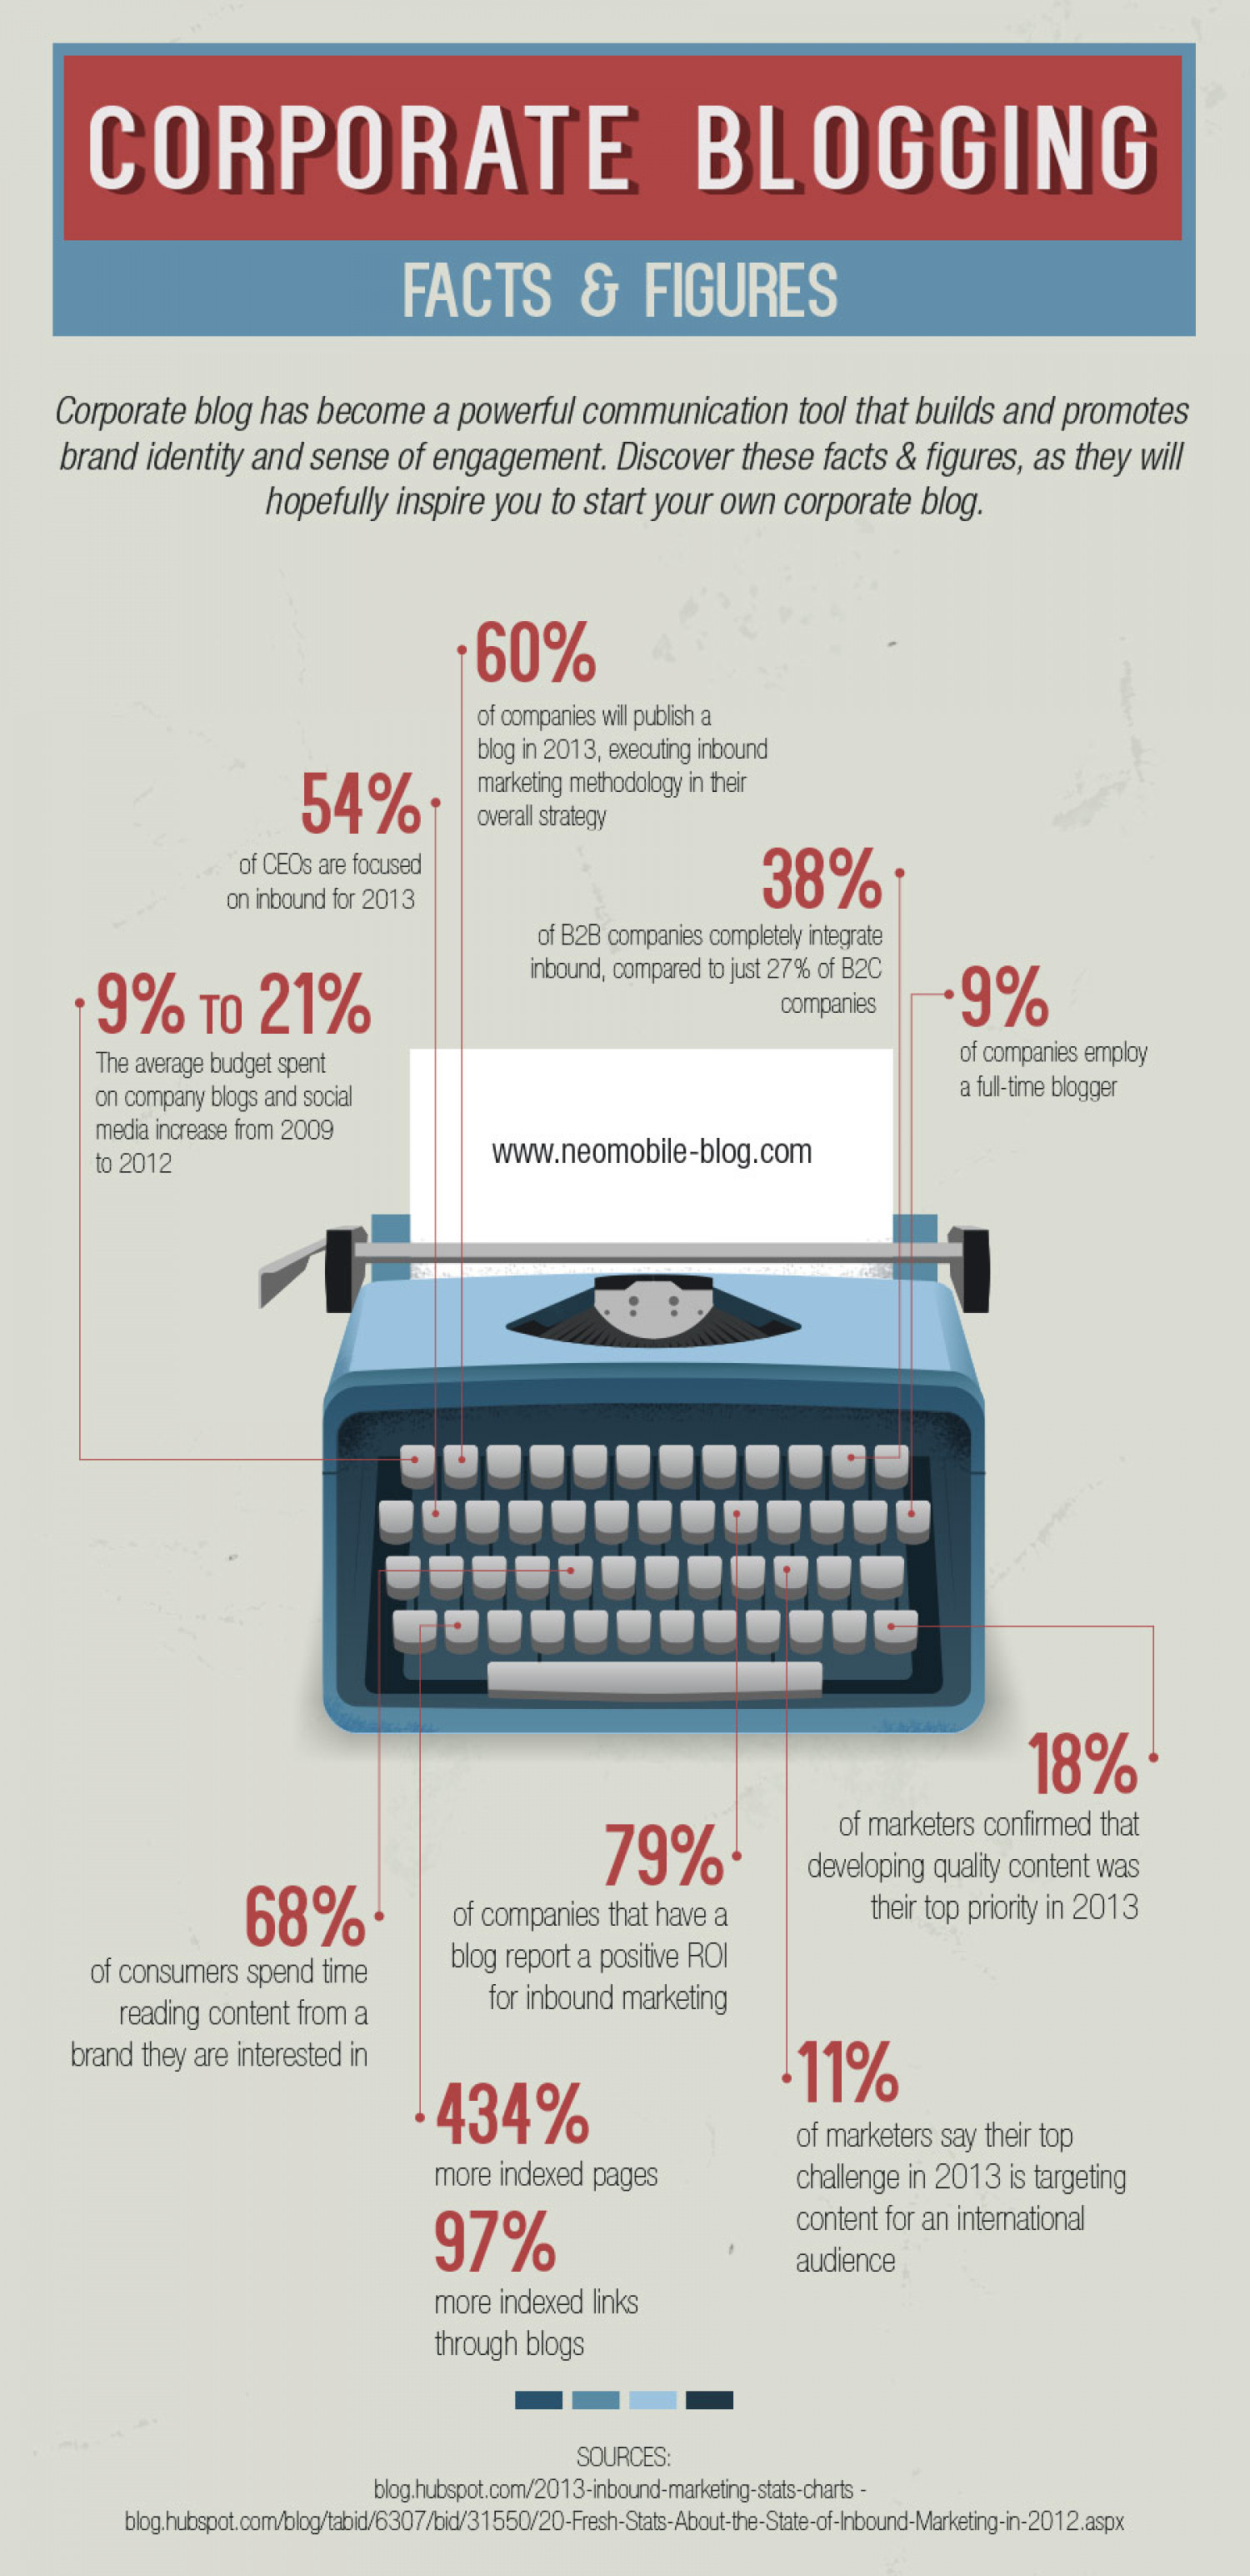 Corporate Blogging - Facts and Figures Infographic